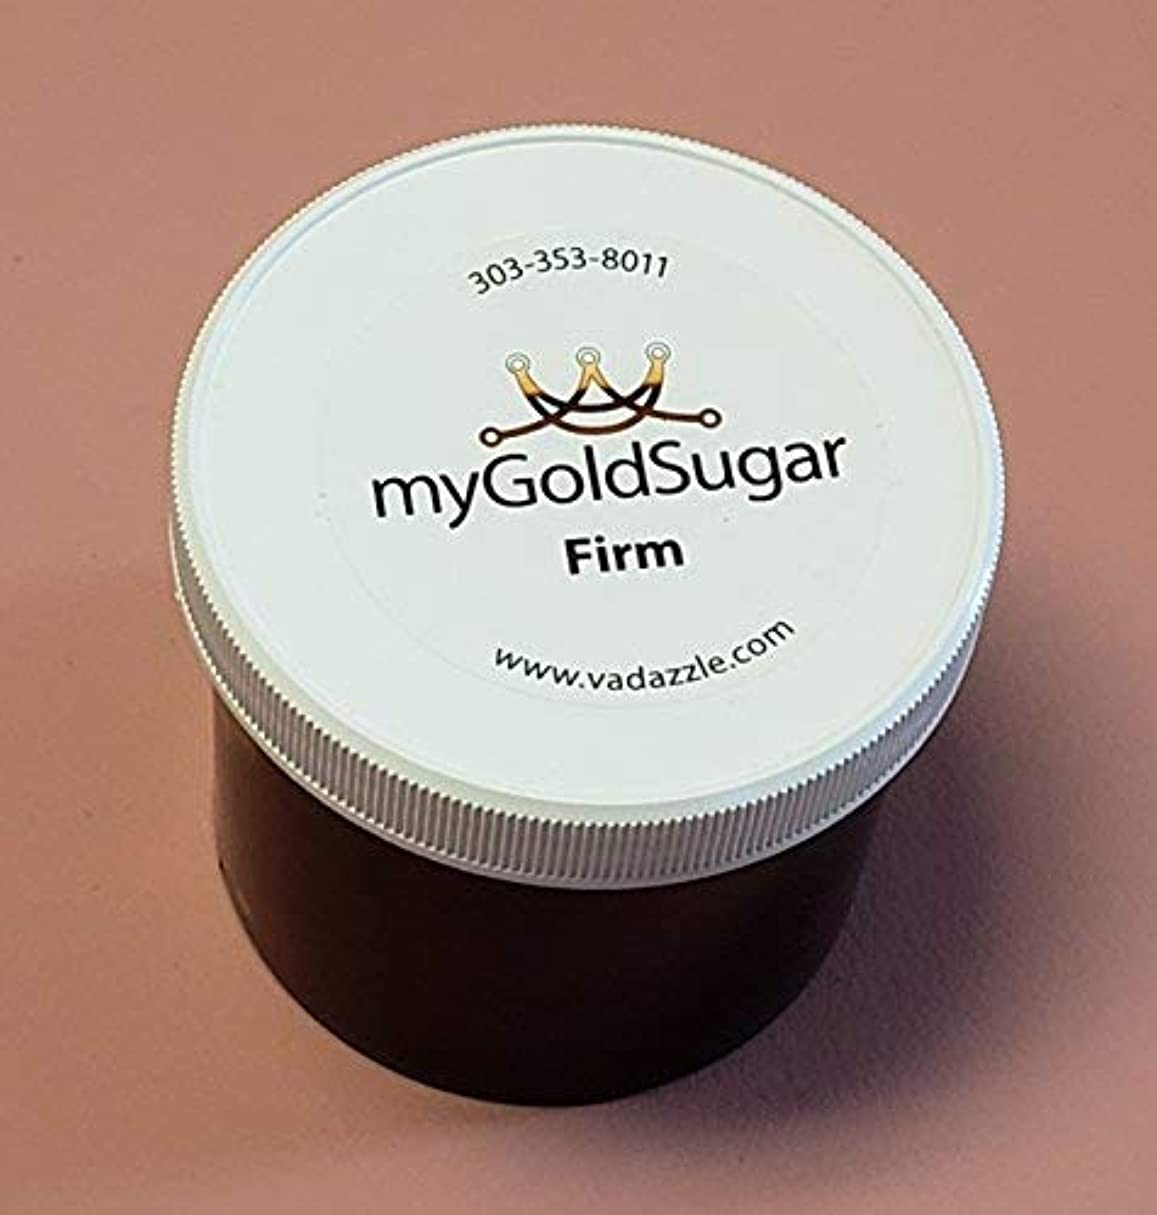 受粉者次中傷16oz My Gold Sugar - Sugaring for Hair Removal (Firm) [並行輸入品]